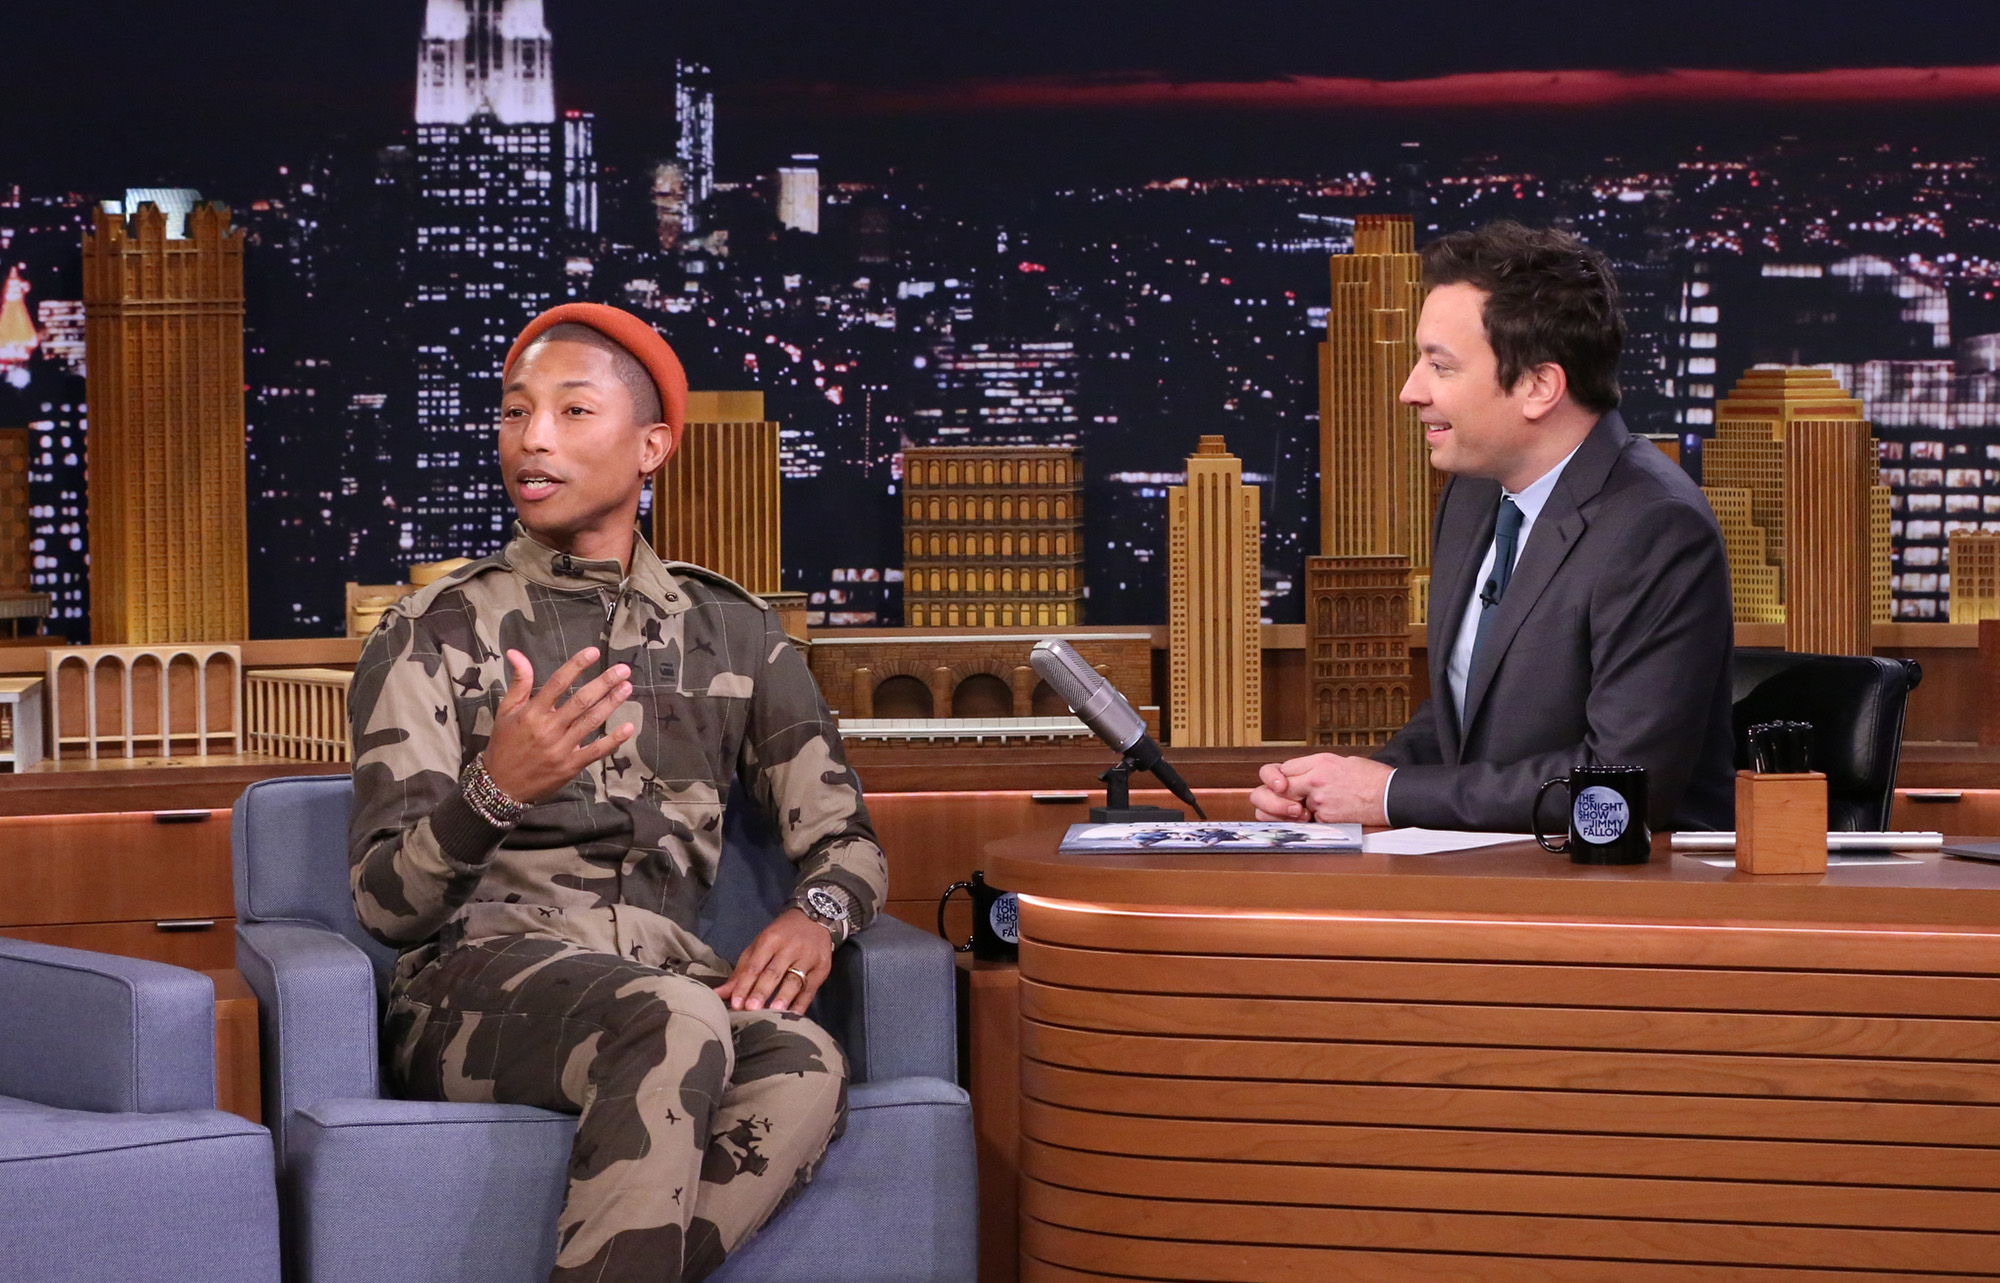 Pharrell Williams during an interview with host Jimmy Fallon on The Tonight Show on December 08, 2016 -- (Photo by: Andrew Lipovsky/NBC/NBCU Photo Bank via Getty Images)